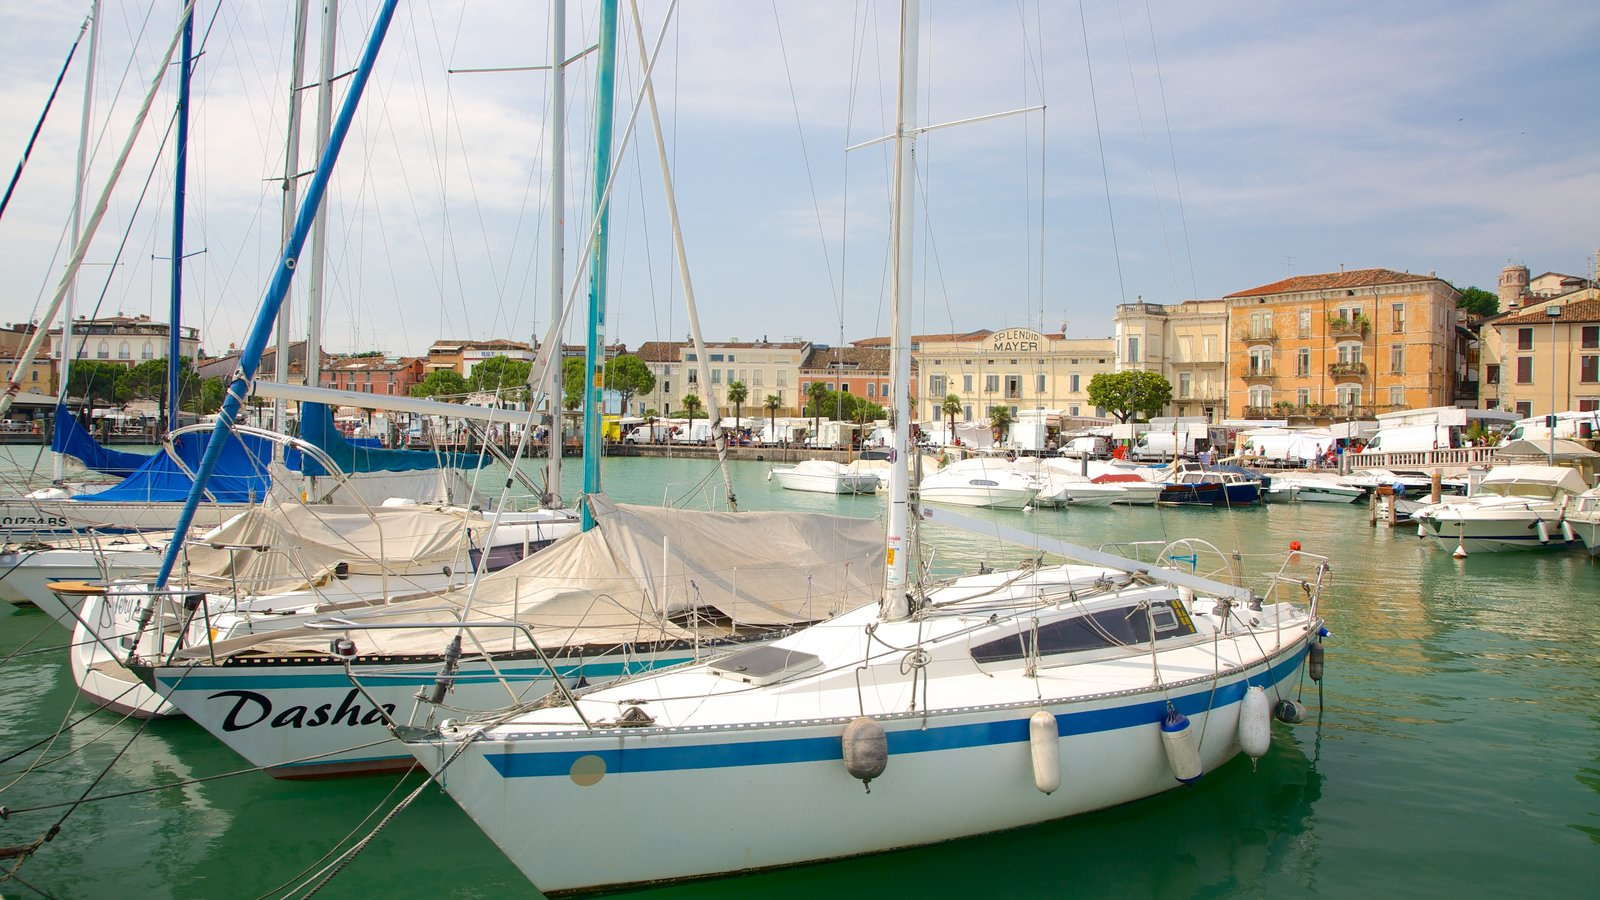 Desenzano del Garda featuring boating, sailing and general coastal views